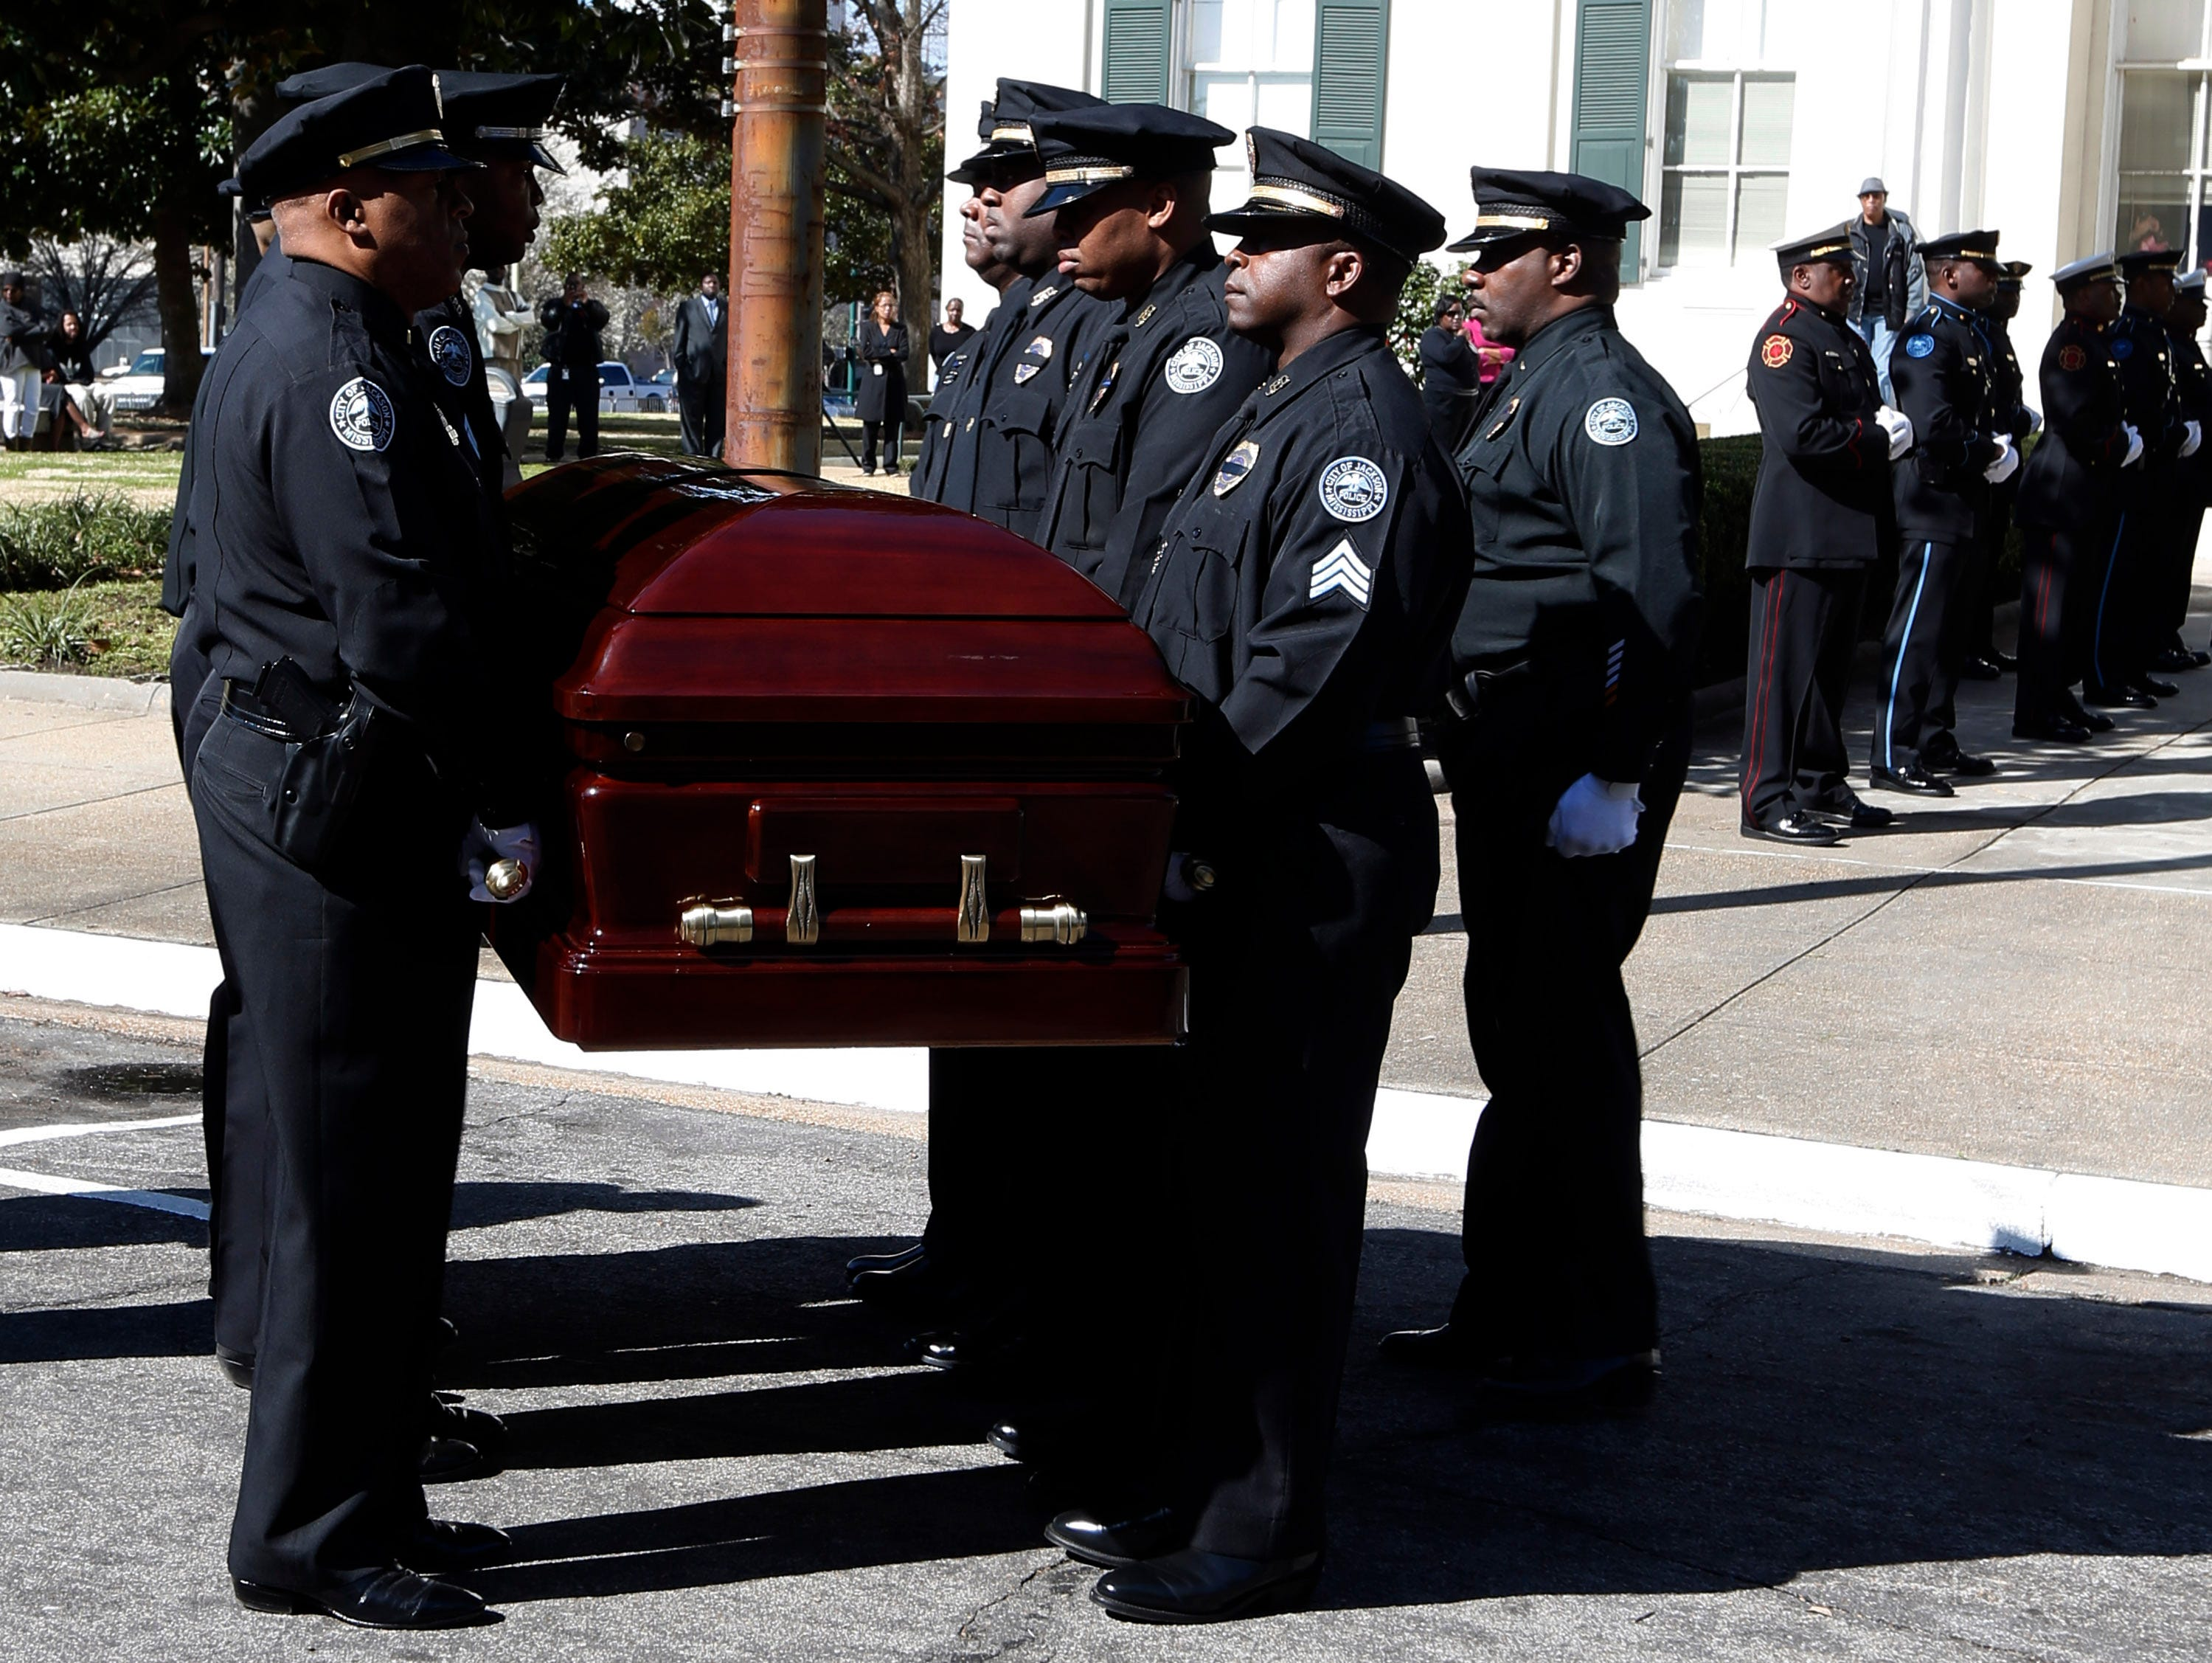 Jackson Police Department honor guard carry the casket bearing the body of the late Mayor Chokwe Lumumba into City Hall past a combined Fire and Police Departments honor guard, Friday, March 7, 2014 in Jackson, Miss. Lumumba, who will lie in state Friday, died Feb. 25.